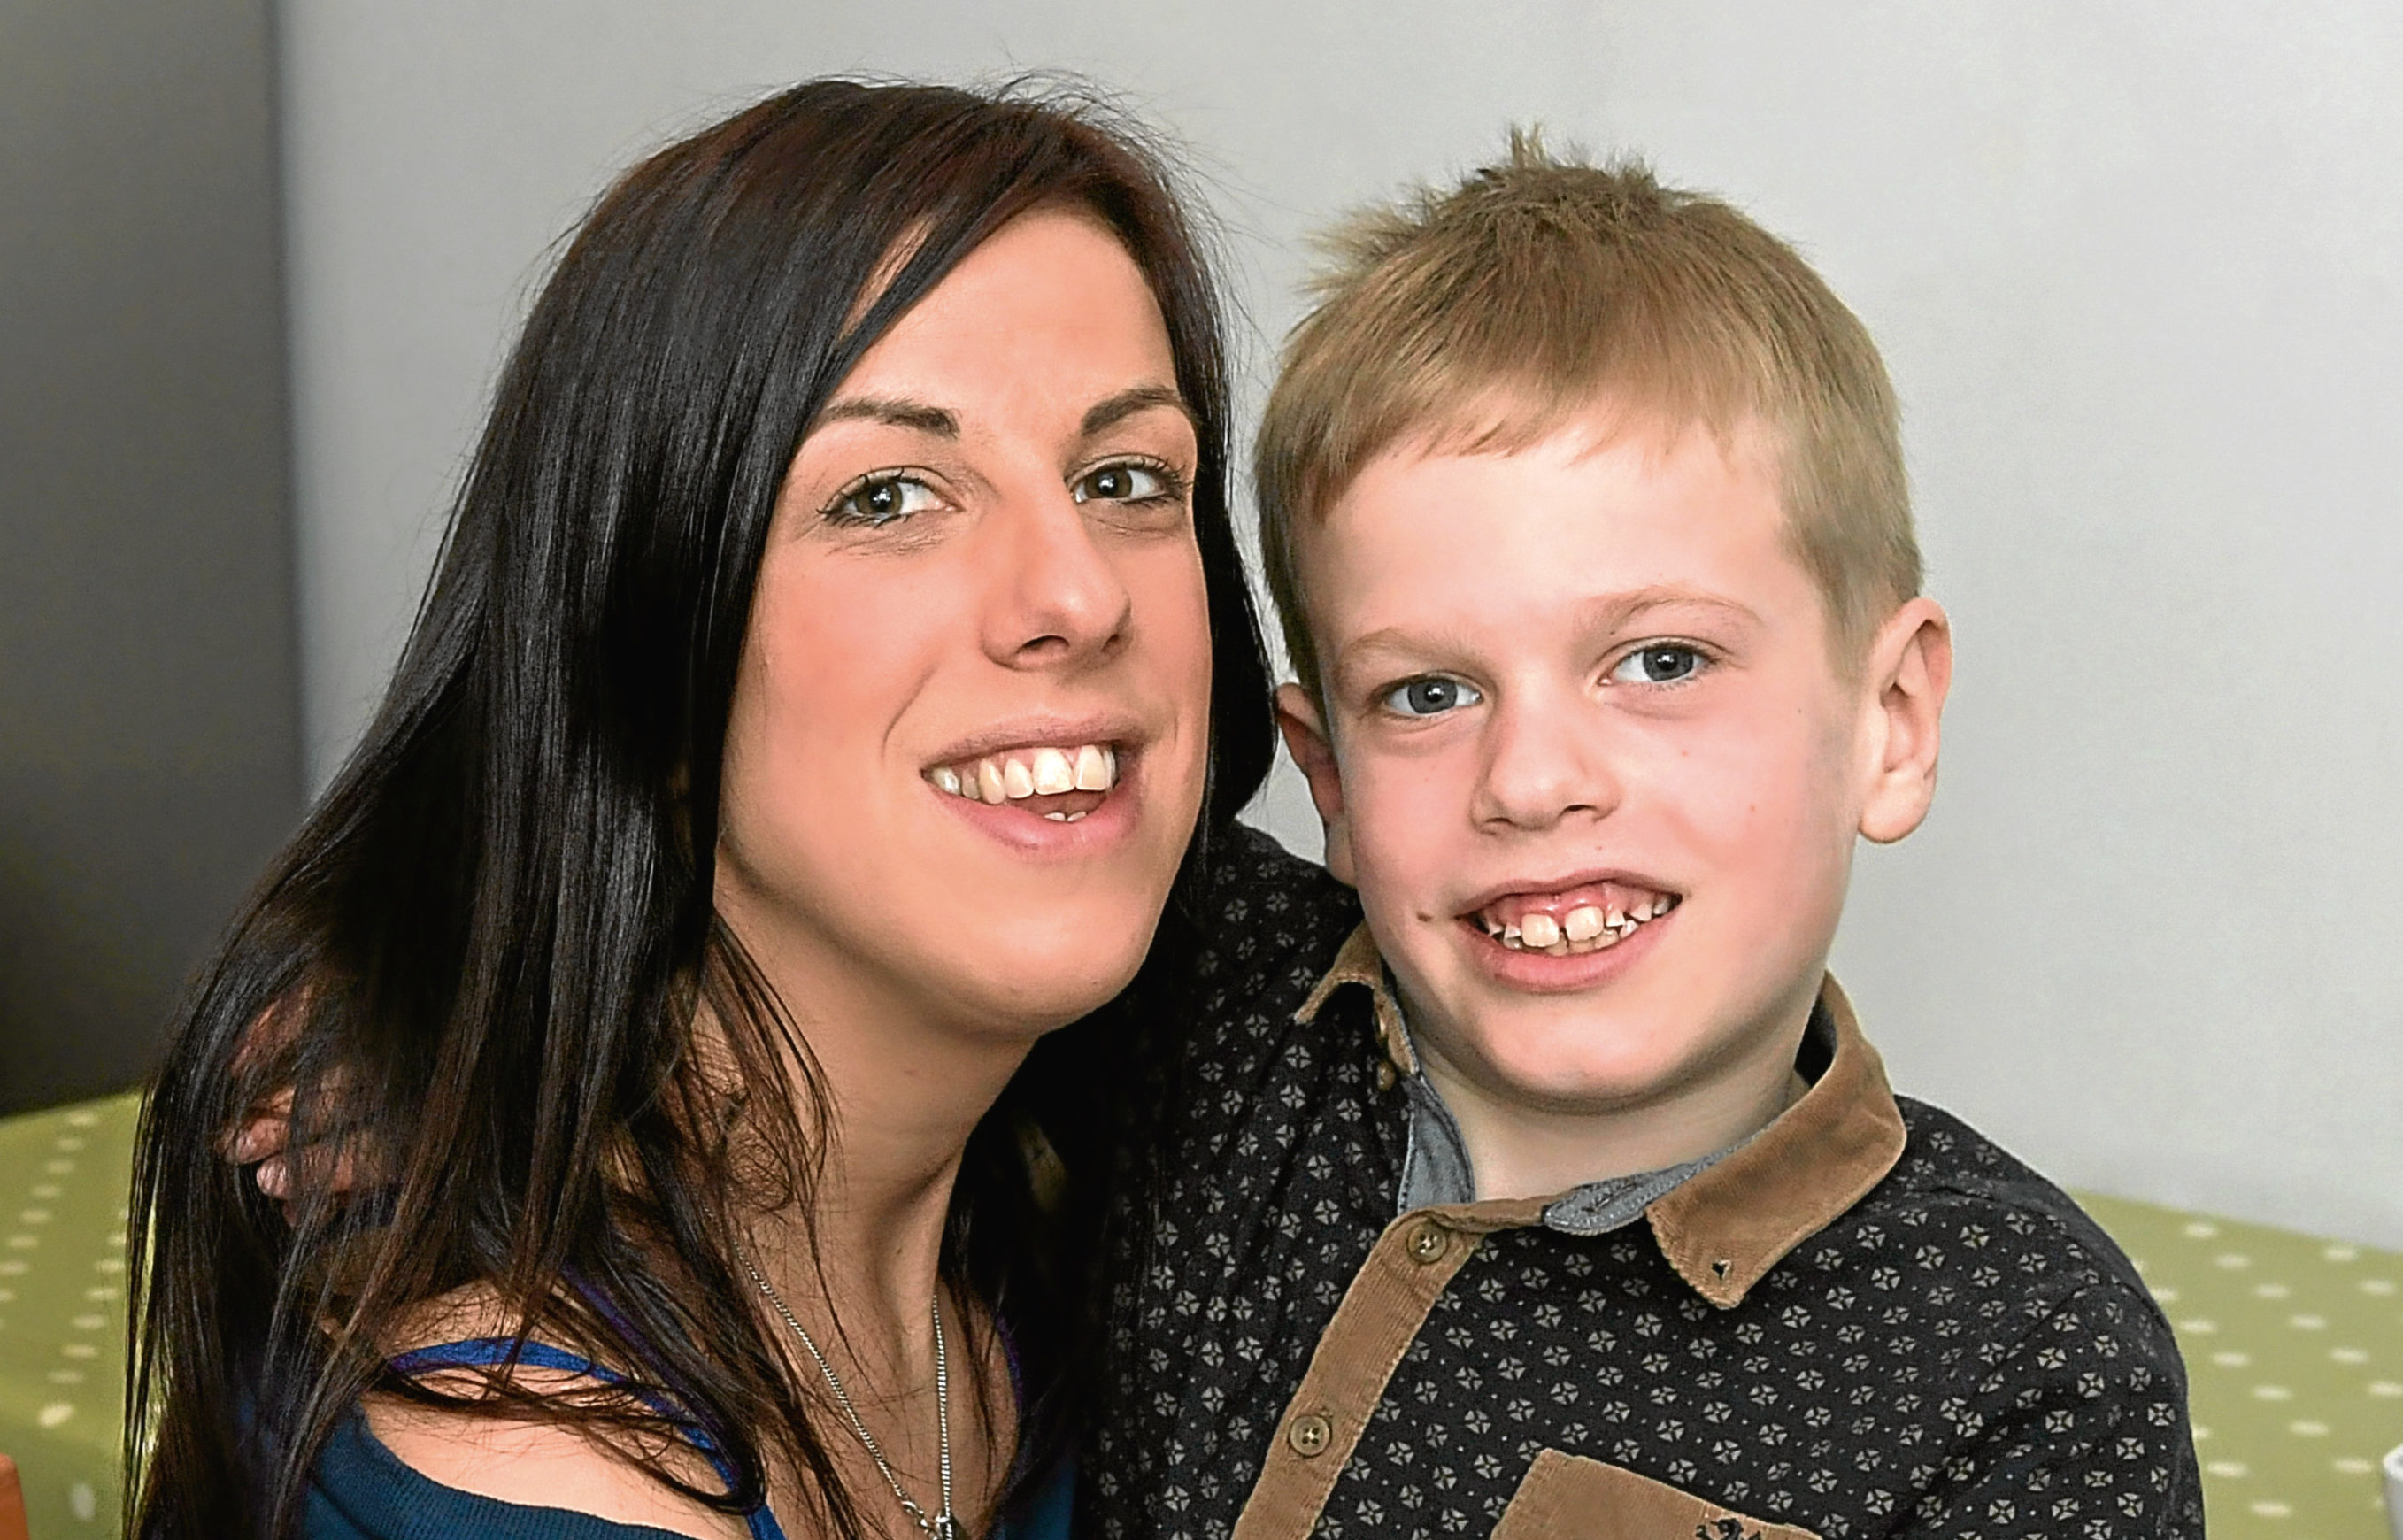 Amy is taking on a number of challenges to raise money for Connor.